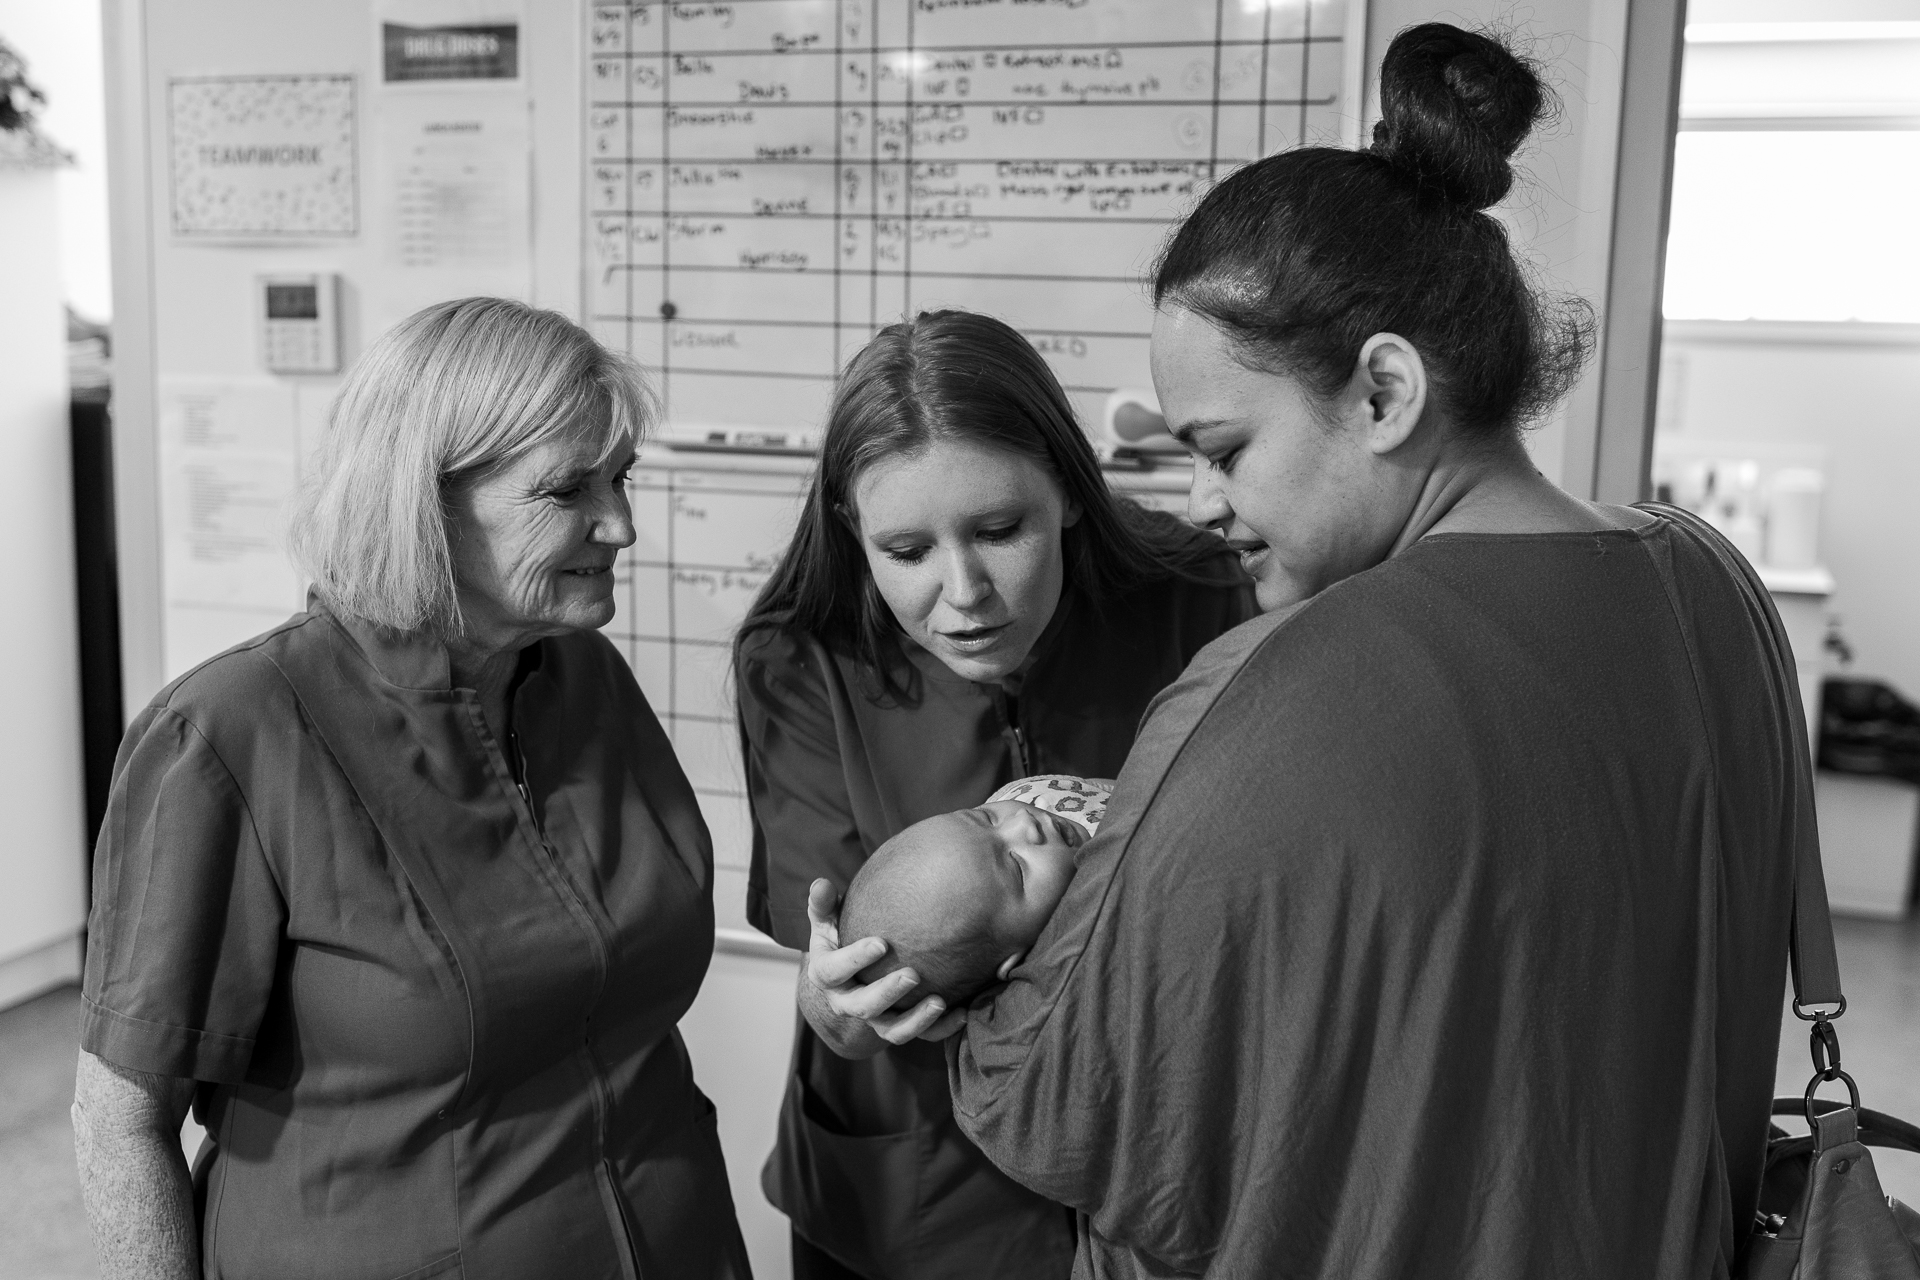 Nurse Ana Manuolevao ( right ) brings her one month old son, Laulelei, to the practice to introduce him to staff: Dr Deborah Williams ( left ) and Practice Manager Bri Smith ( middle ). Manuolevao returned to work in August, 2018. Brudine is supportive and flexible with staff having or raising children, which is also pragmatic: there are four times as many female veterinary services staff as males in the industry.  12 February, 2018.